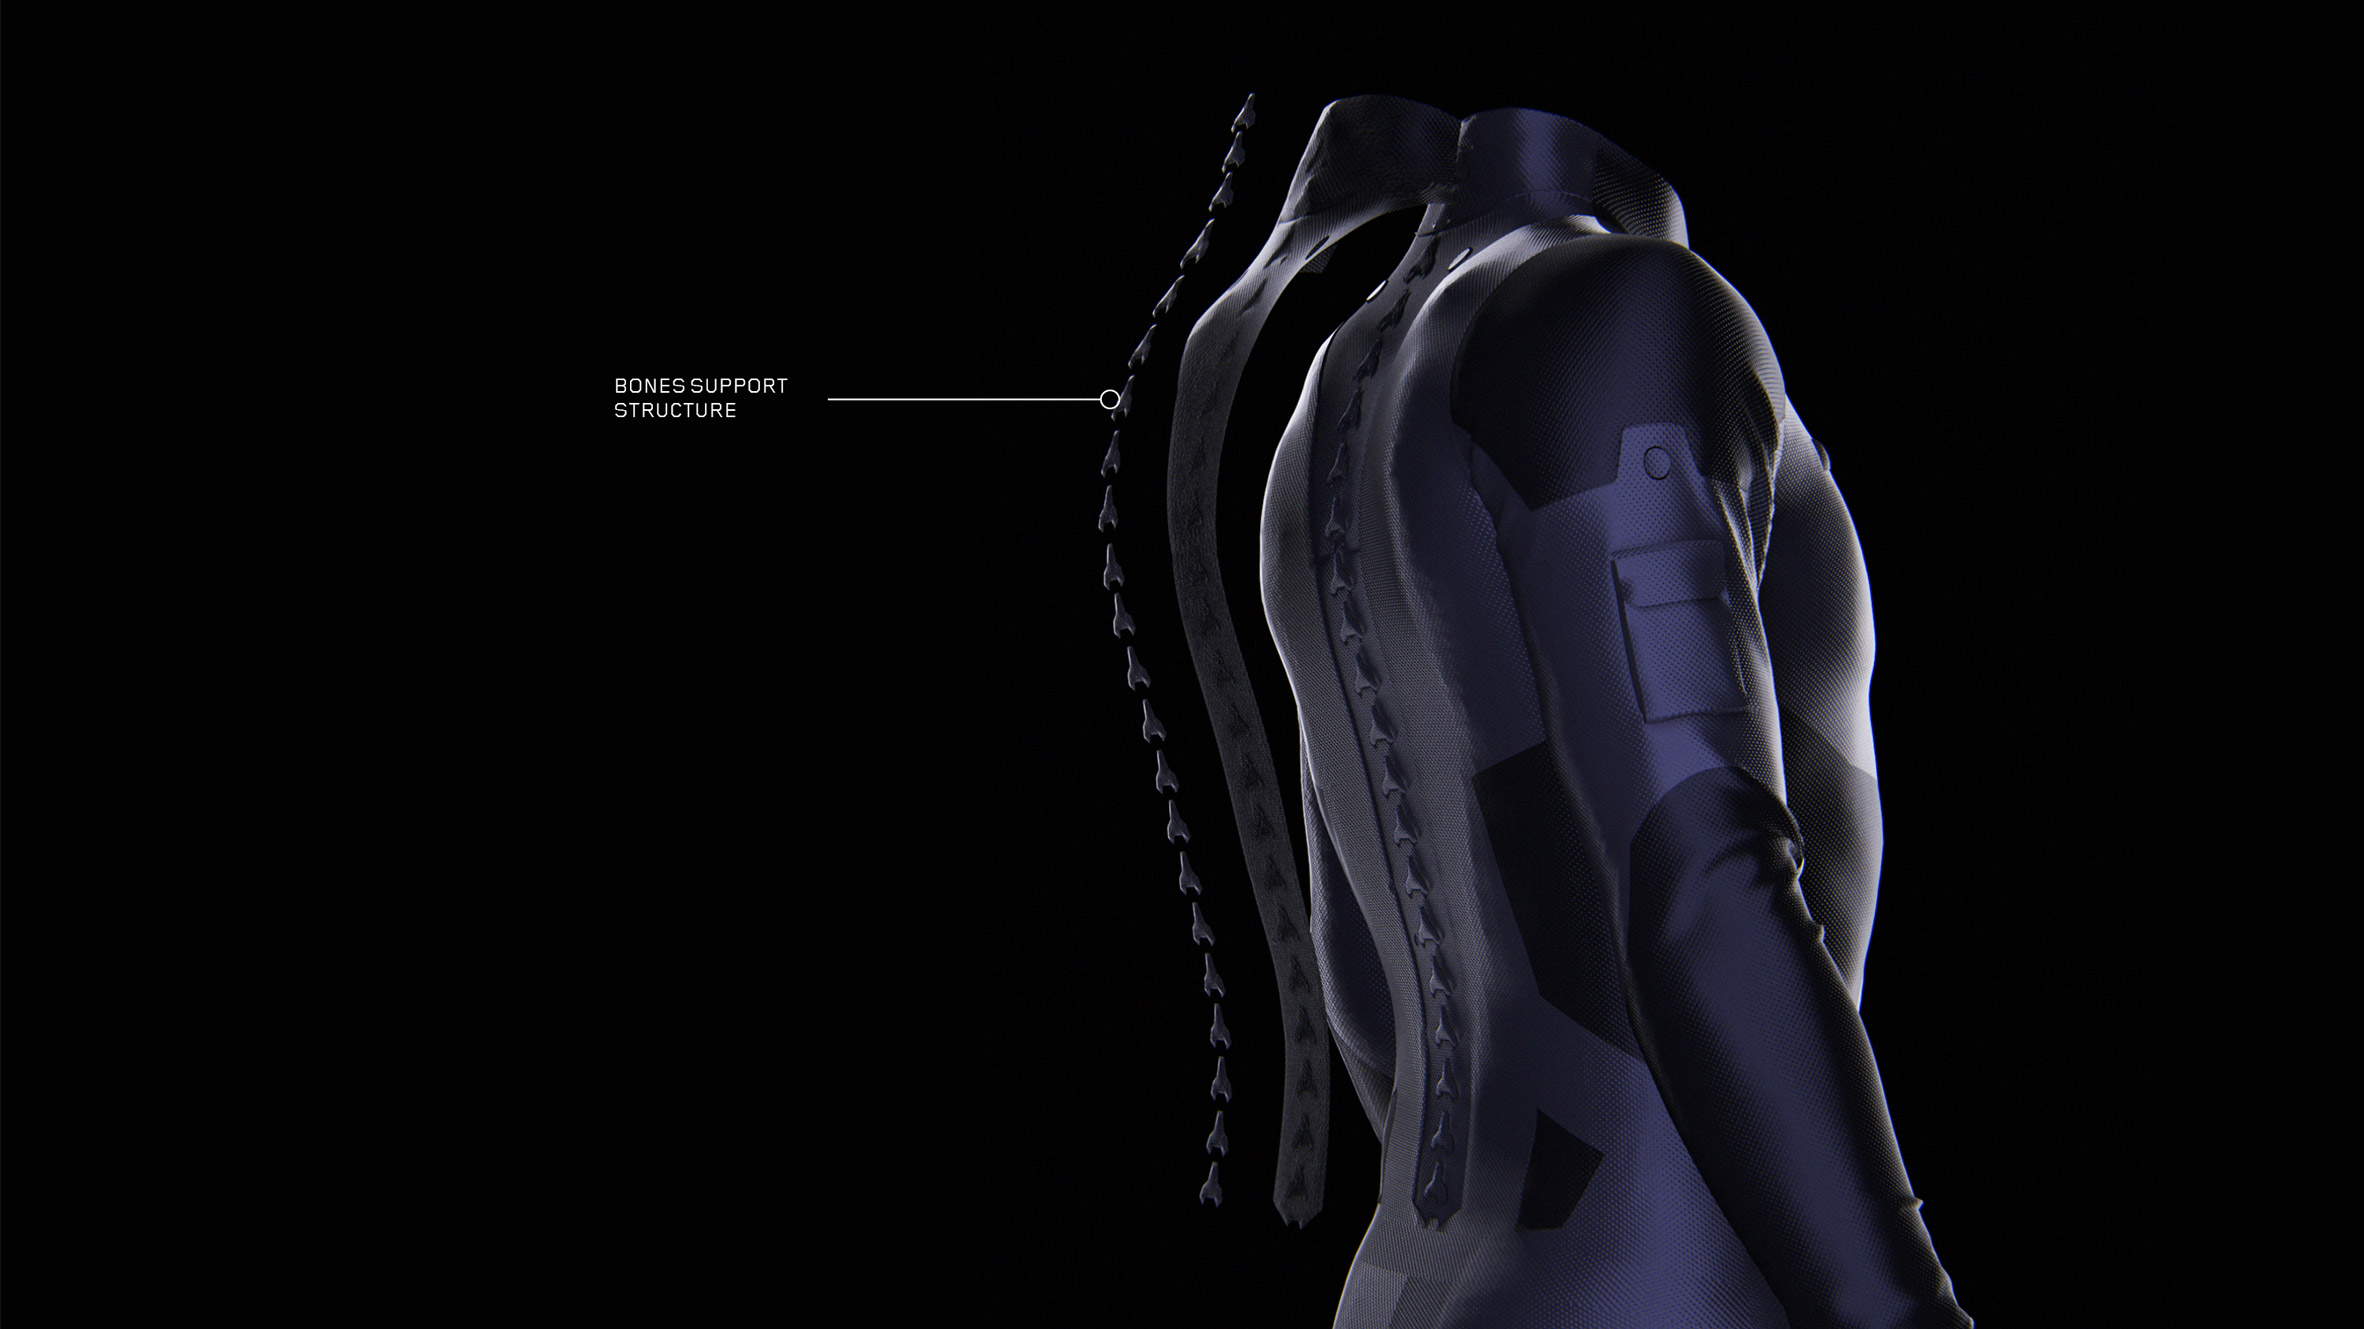 Space suits for SpaceX